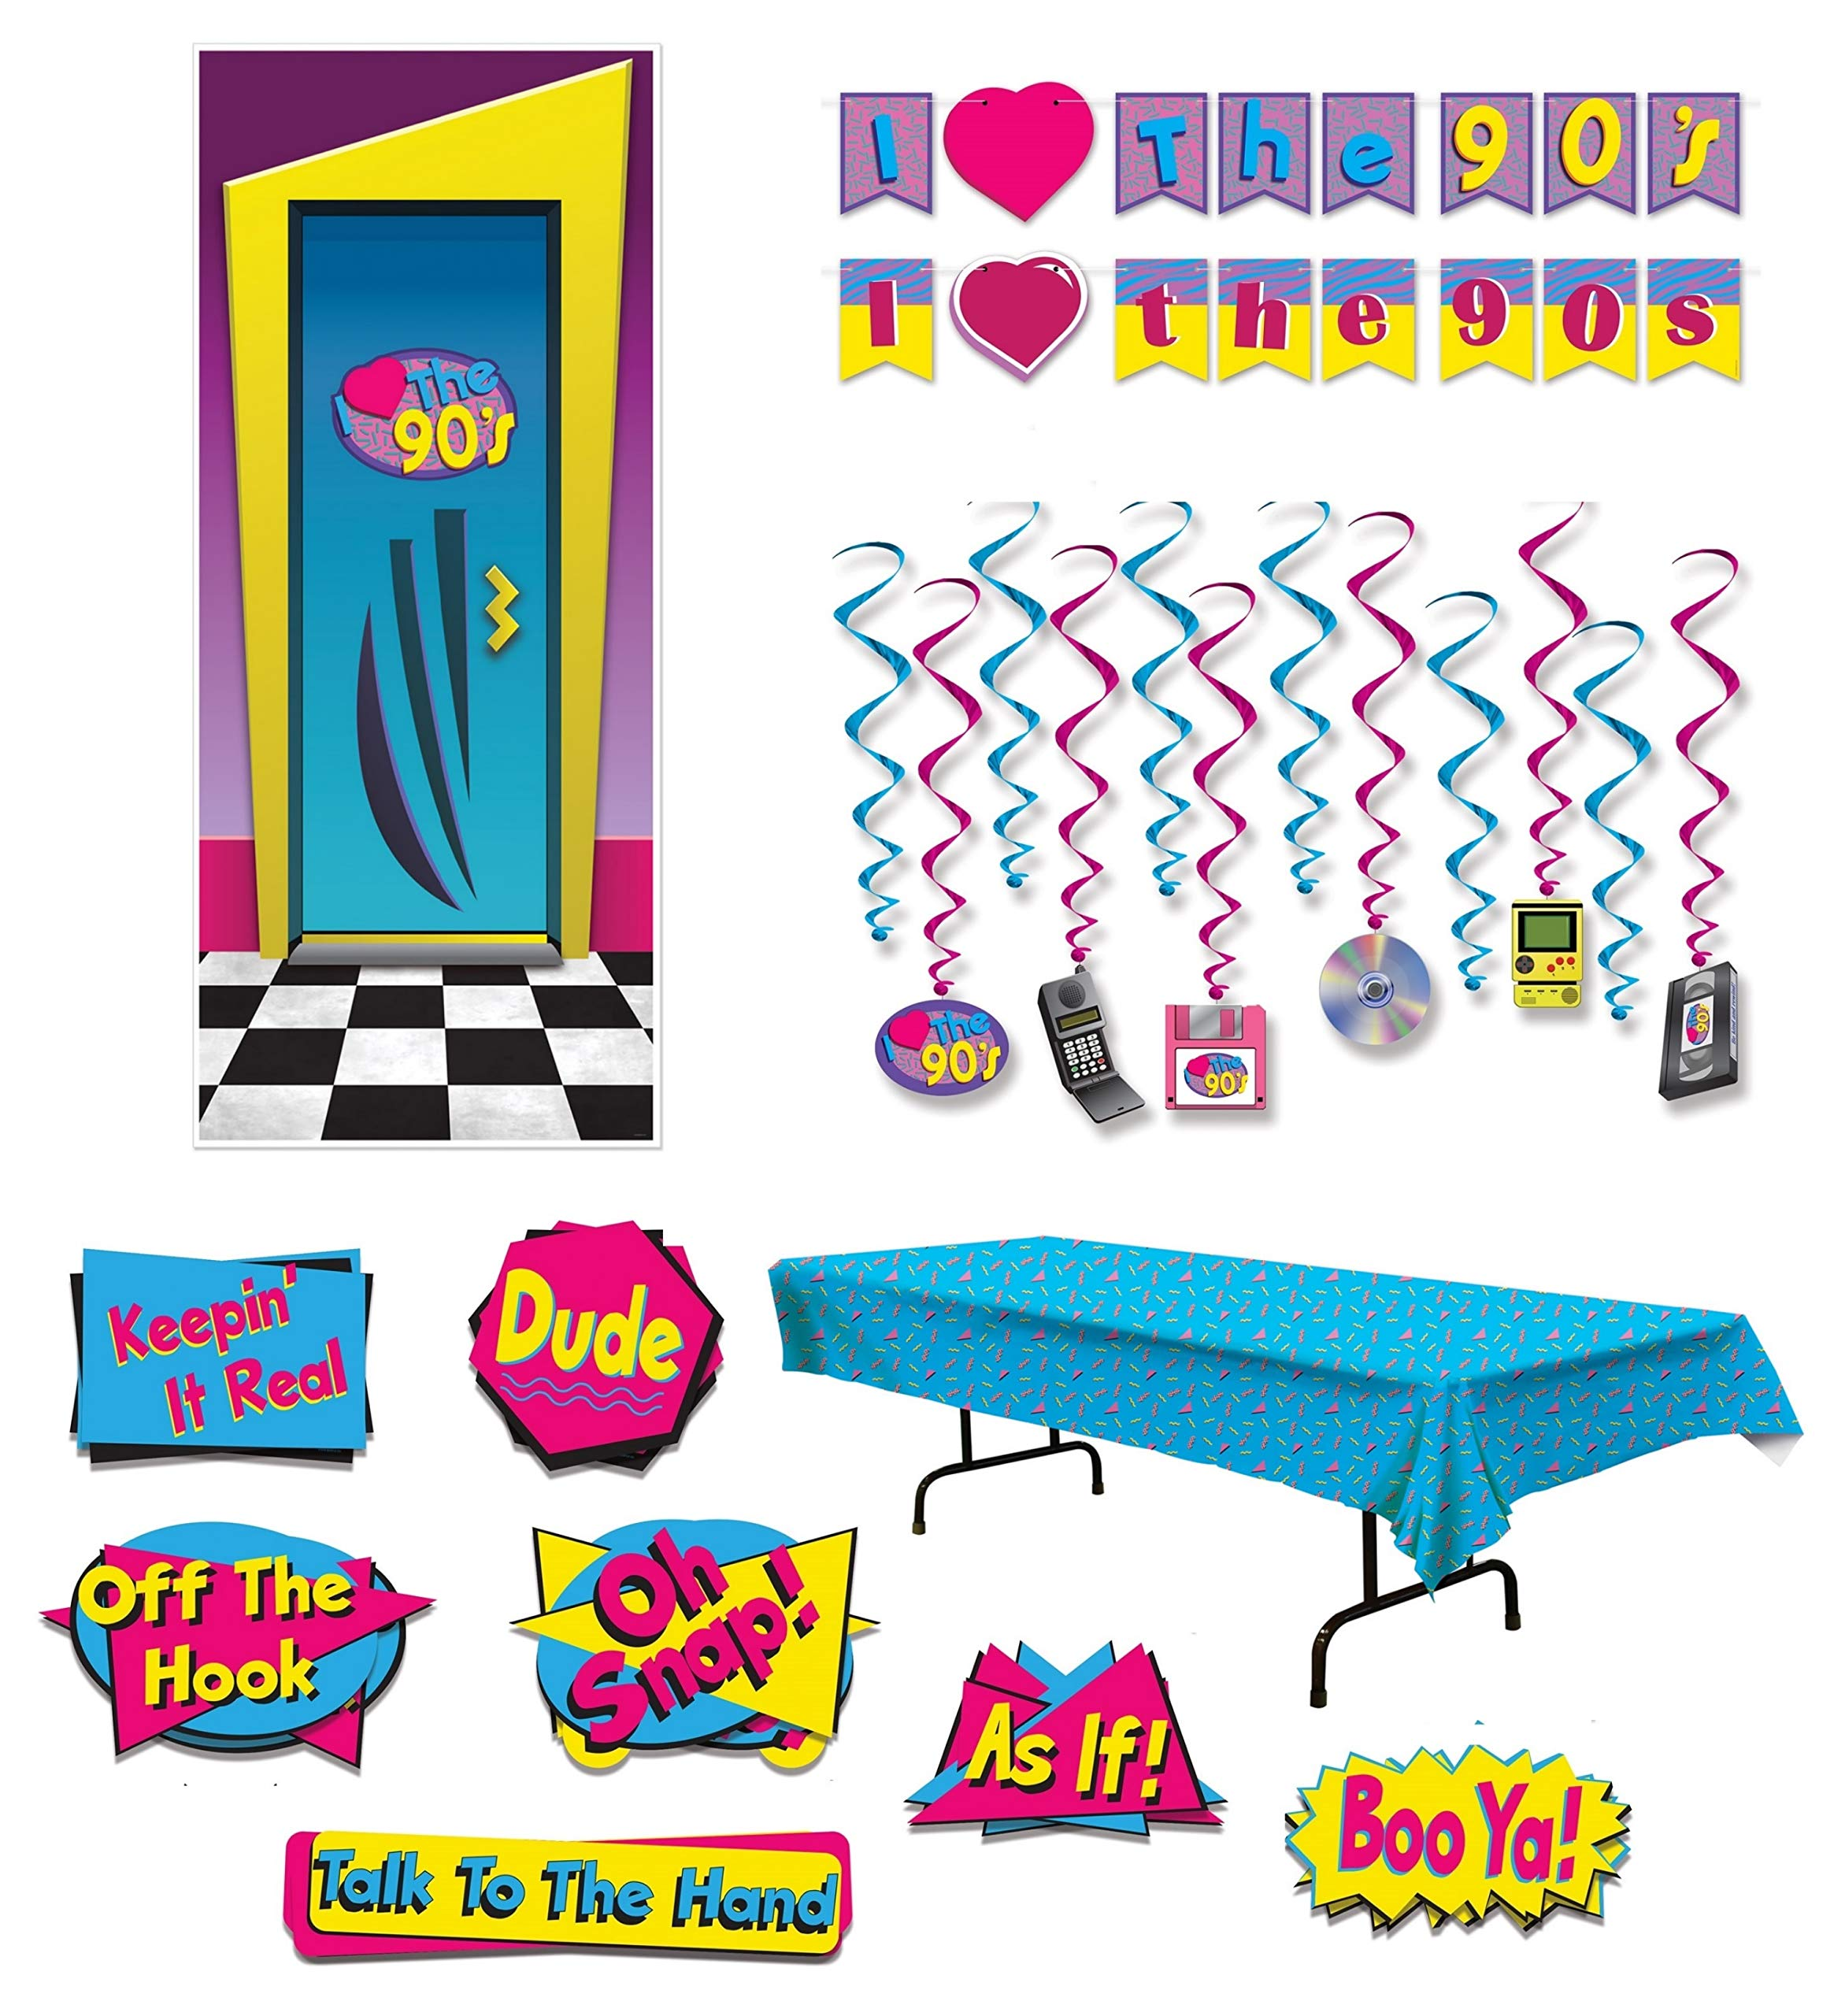 90s Party Supplies Decorations Hip Hop Themed Table Cover Cutouts Banner Streamer Whirls Door Cover by FAKKOS Design